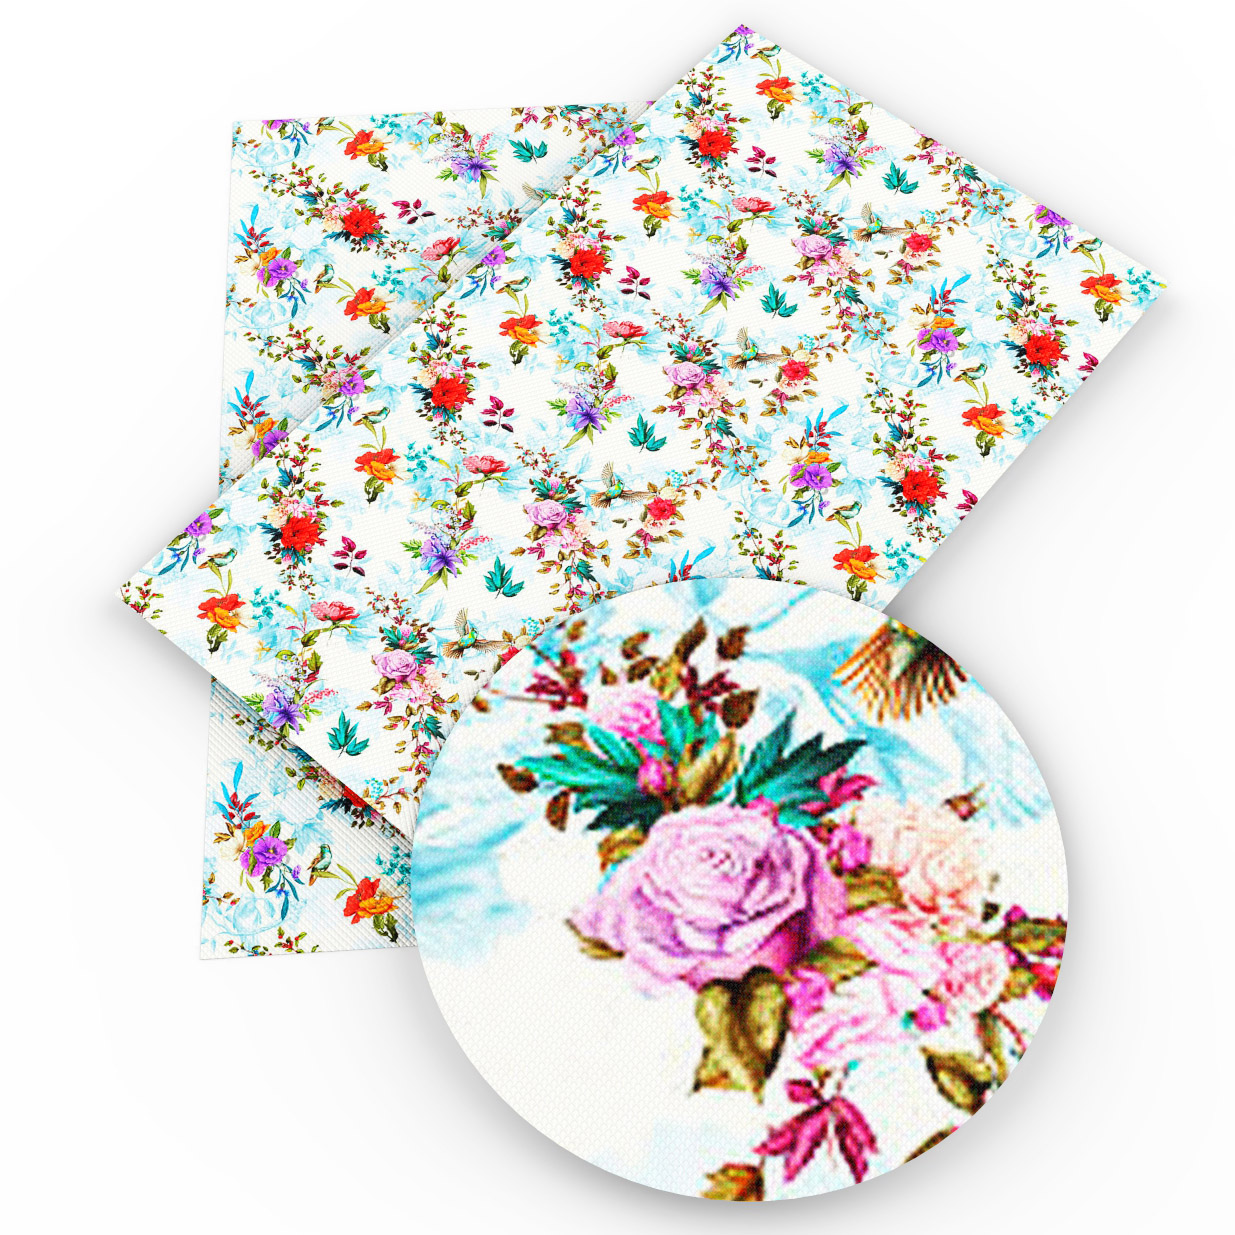 David accessories 20*34cm Stripe Halloween Bird Flower Faux Artificial Synthetic For DIY Sewing Bag Shoes Material,1Yc3718